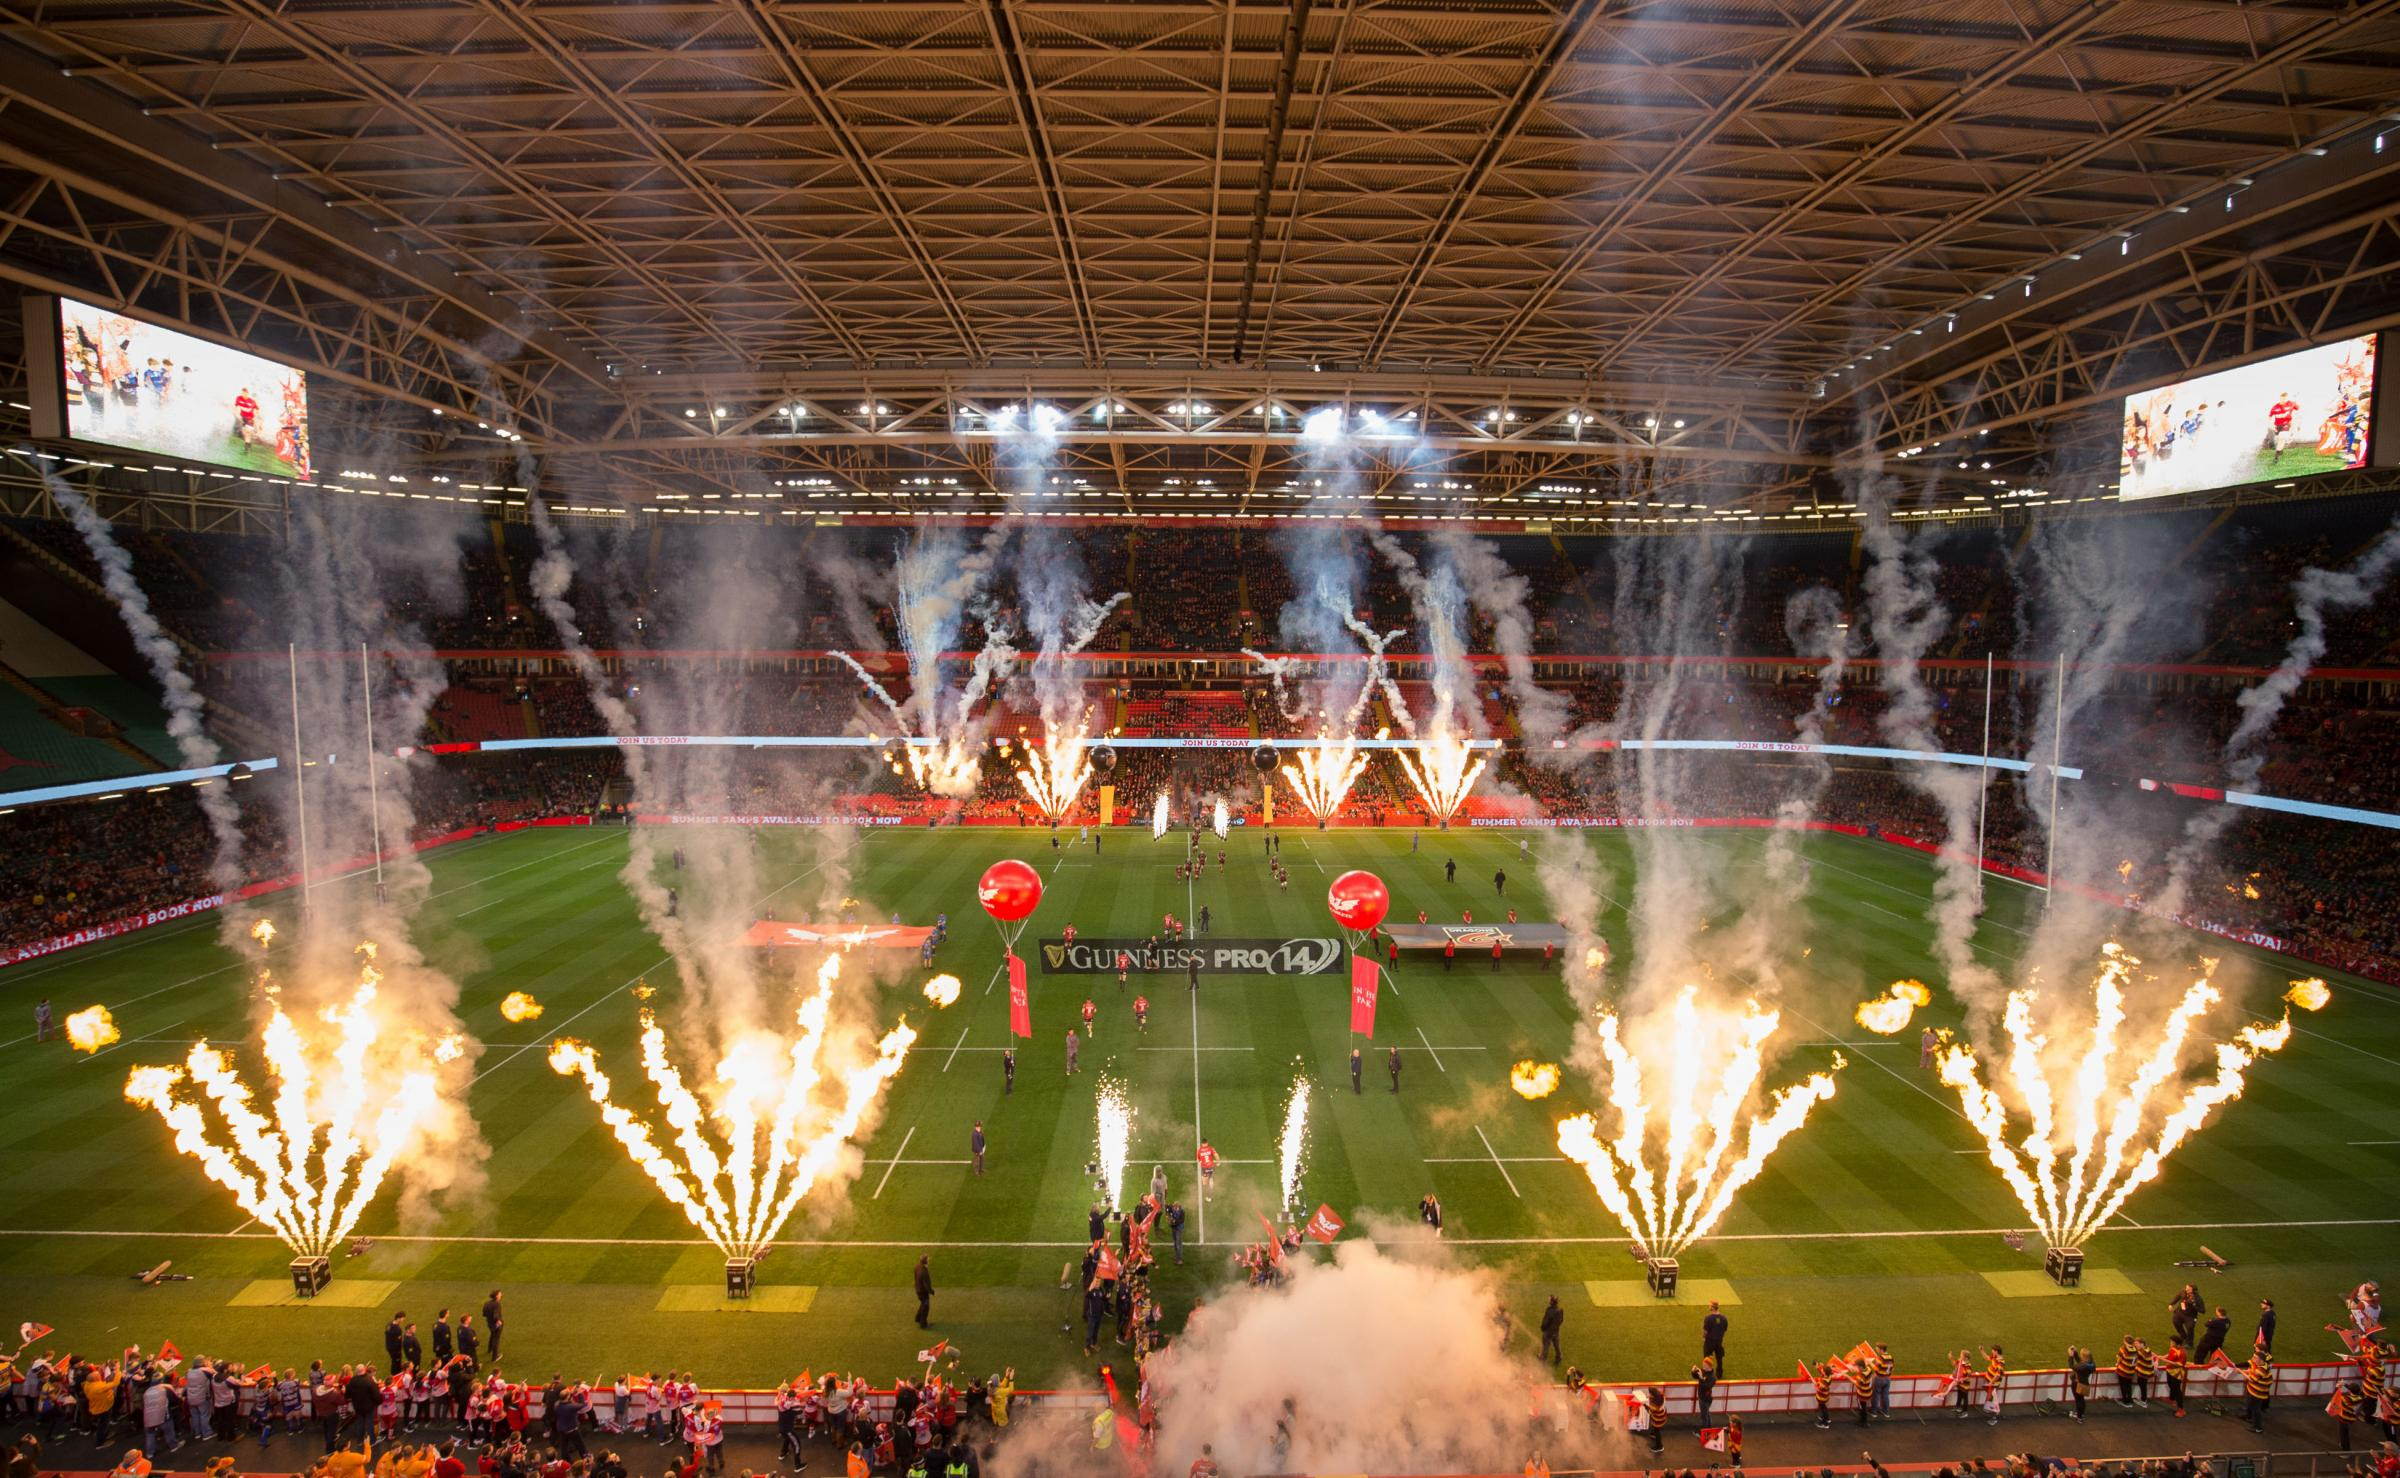 28.04.18 - Dragons v Scarlets, Judgement DAY VI, Guinness PRO14 -  A general view of the Principality Stadium as the Dragons and Scarlets take to the pitch in the first of the Judgement Day VI matches.